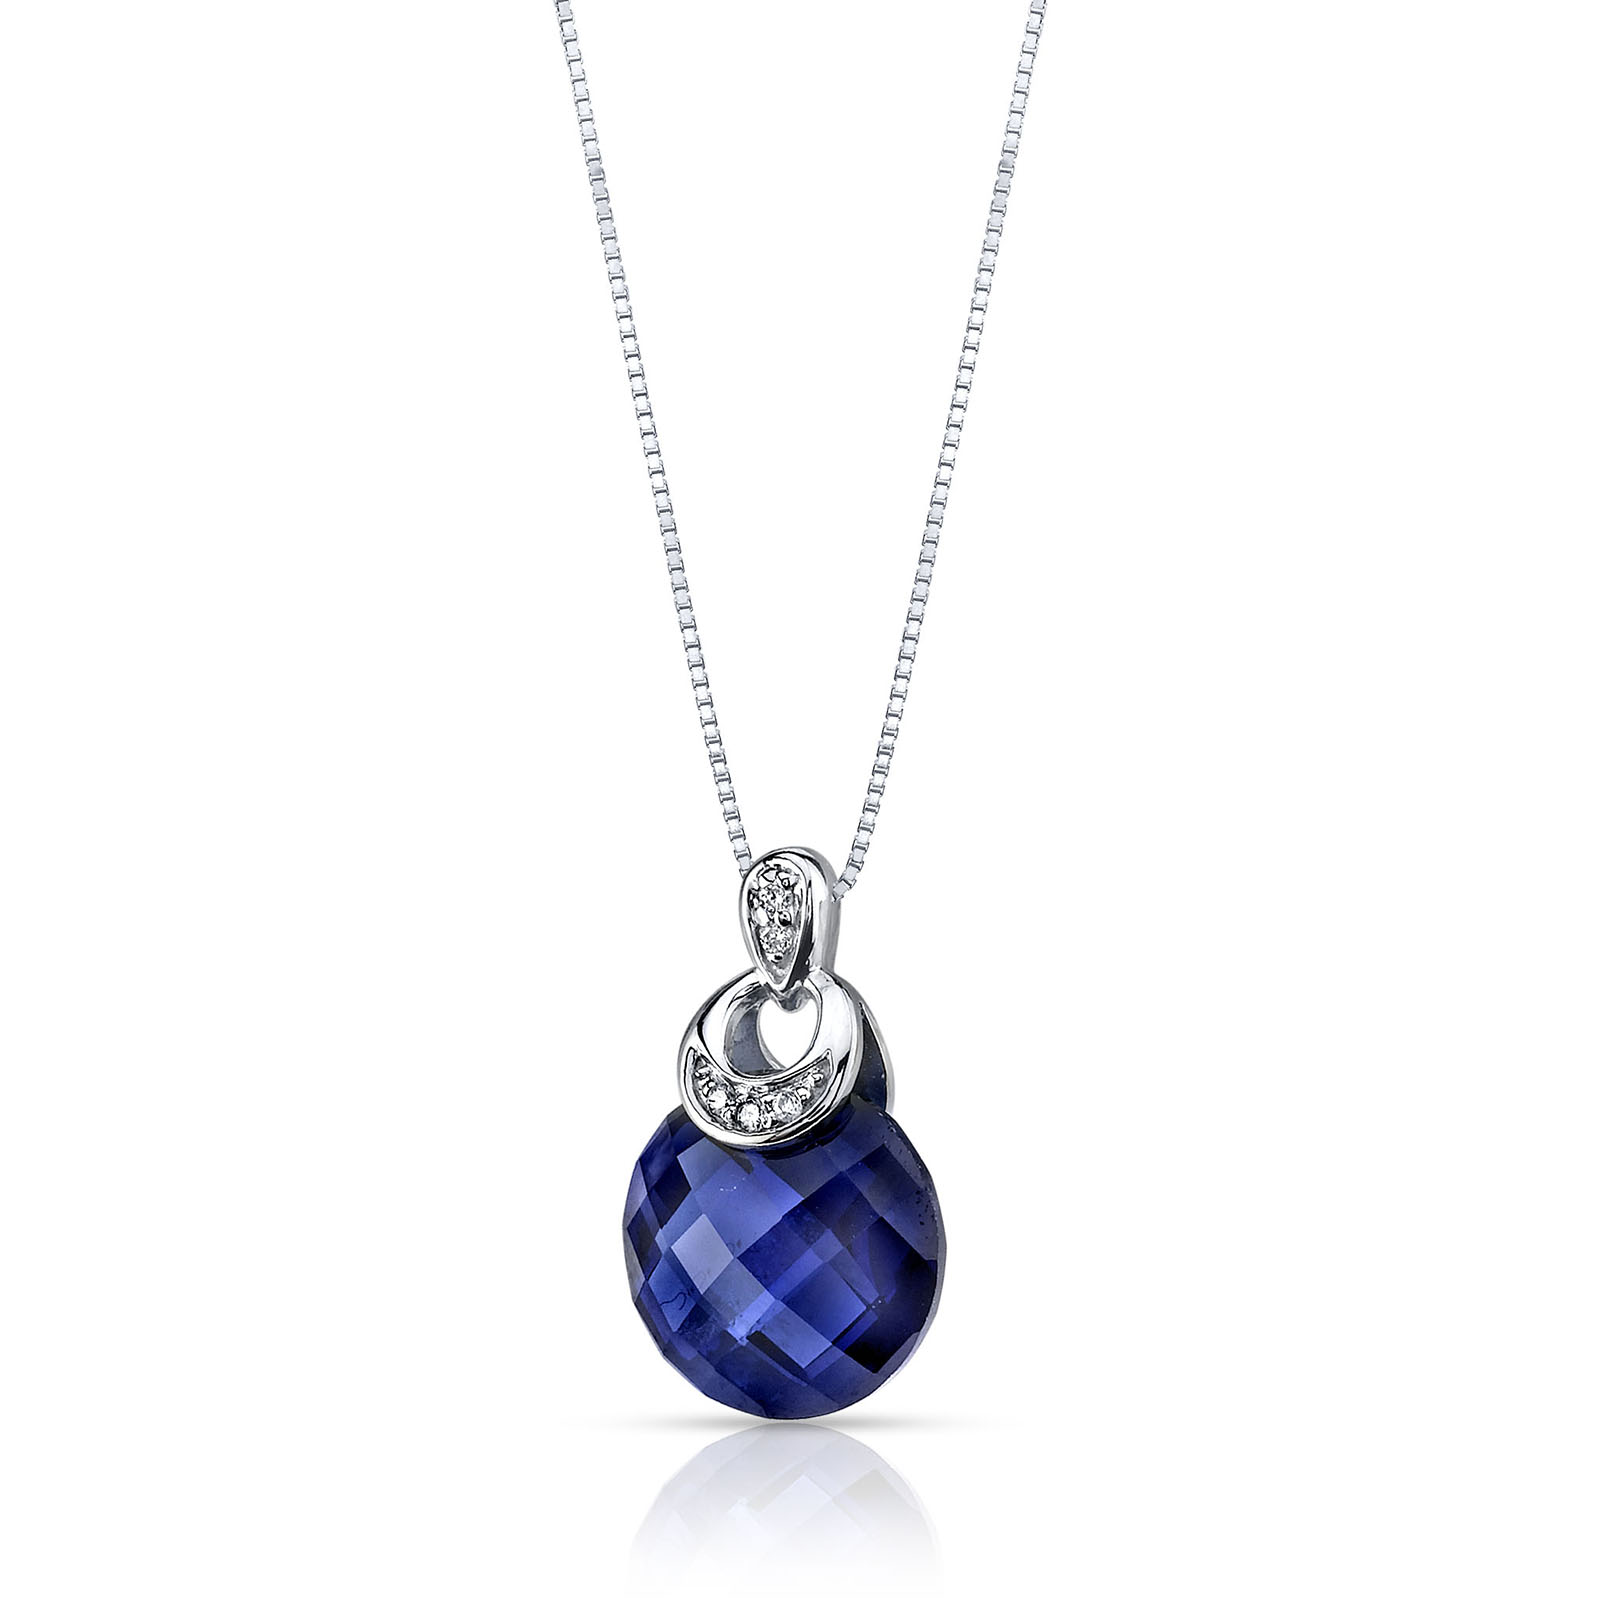 Sapphire & Diamond 9ct White Gold Pendant Necklace with Silver Chain